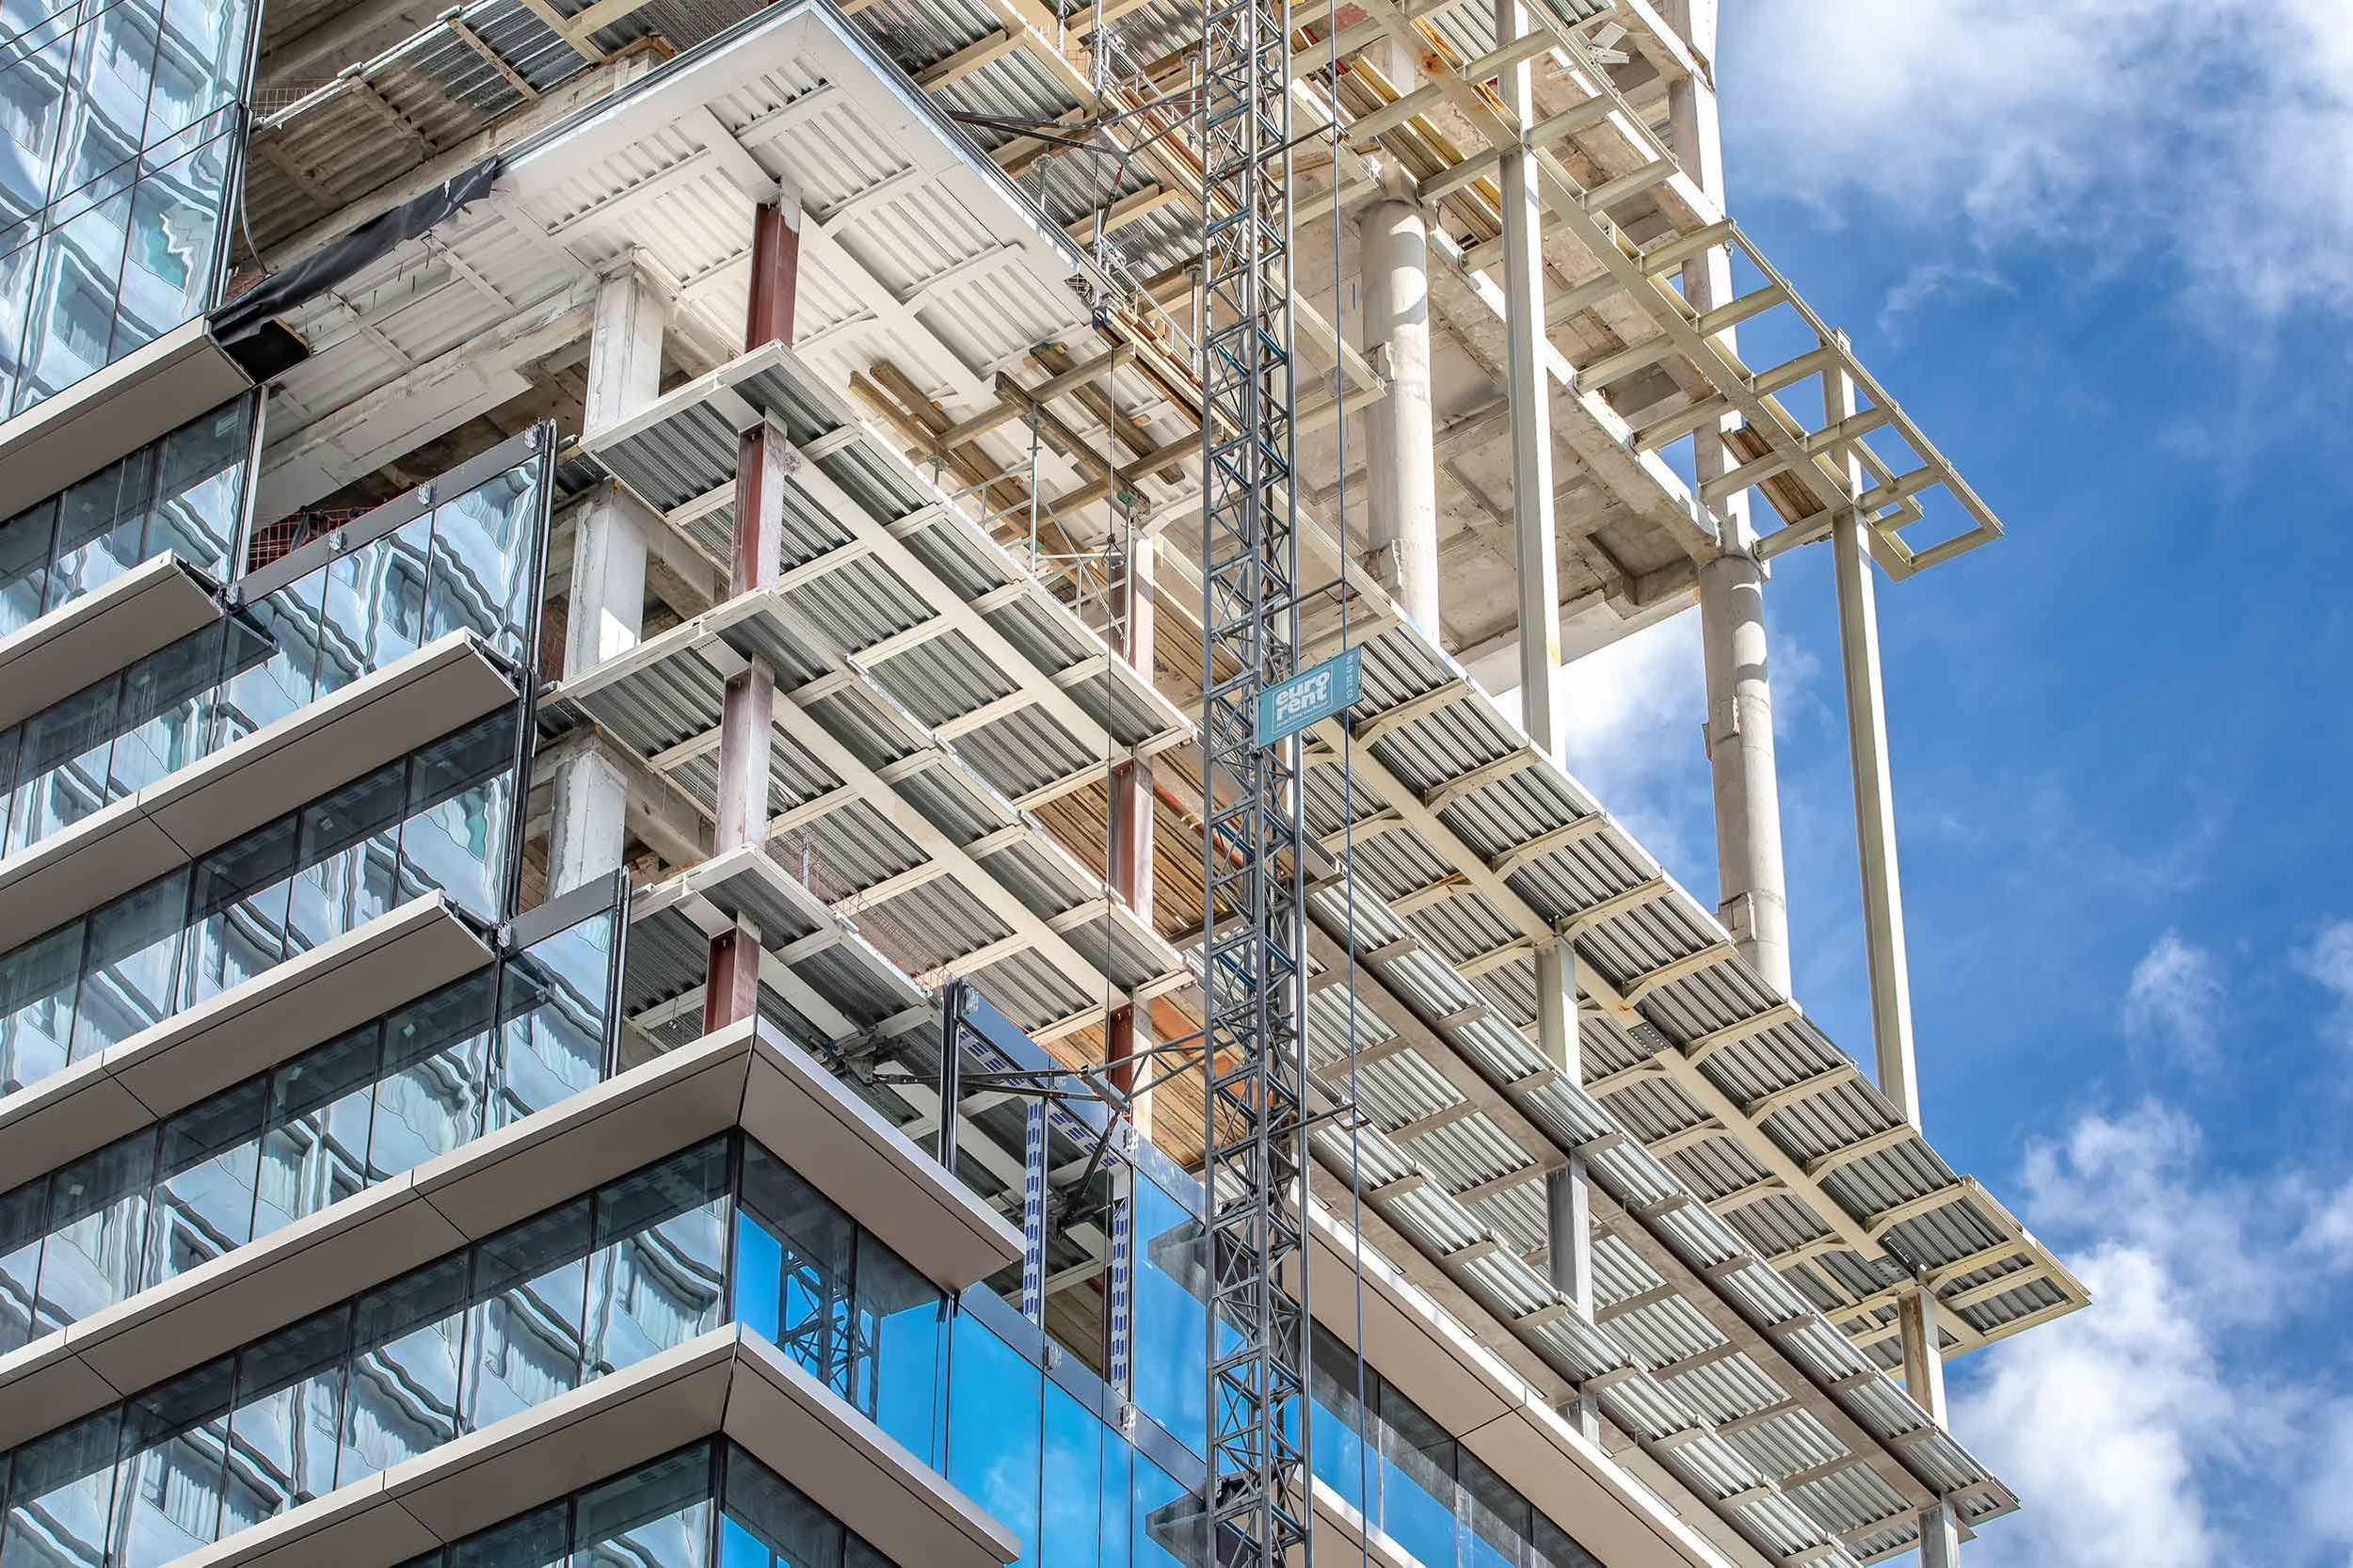 Construction_photography_pascal_vandecasteele36.jpg